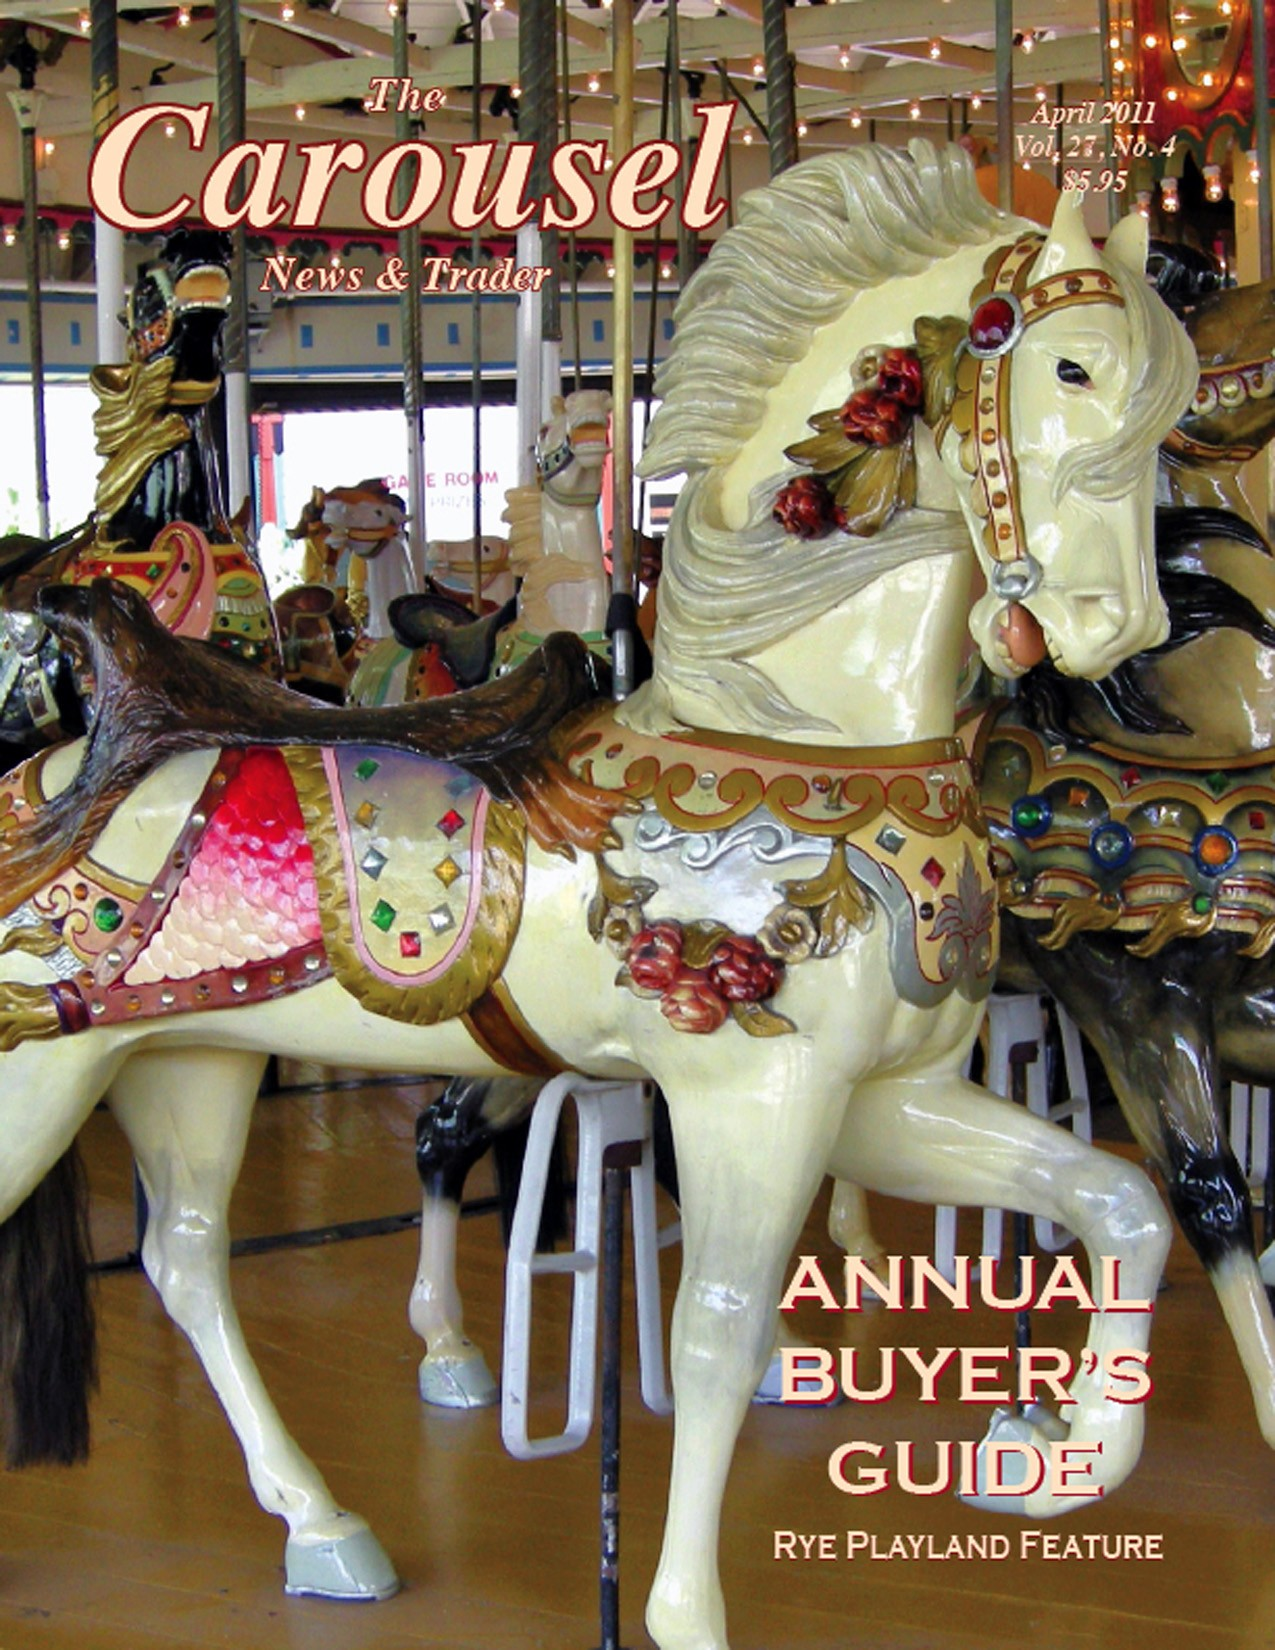 Carousel-news-cover-4-Historic-Rye-Playland-carousel-April-2011